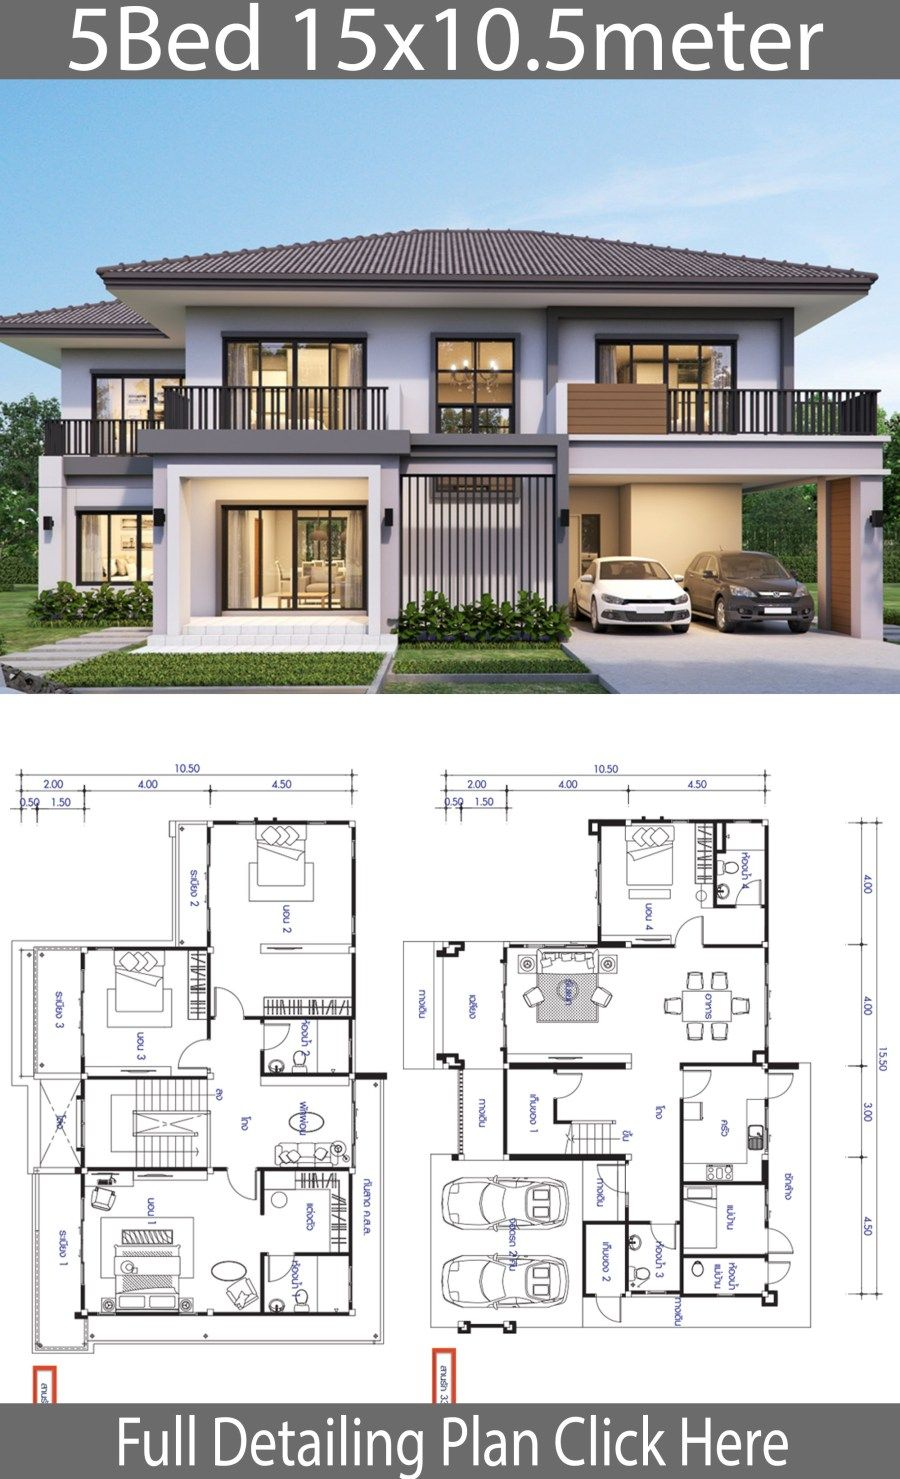 House Design Plan 15 5x10 5m With 5 Bedrooms Style Modernhouse Description Number Of Floors House Architecture Design Duplex House Design House Plans Mansion